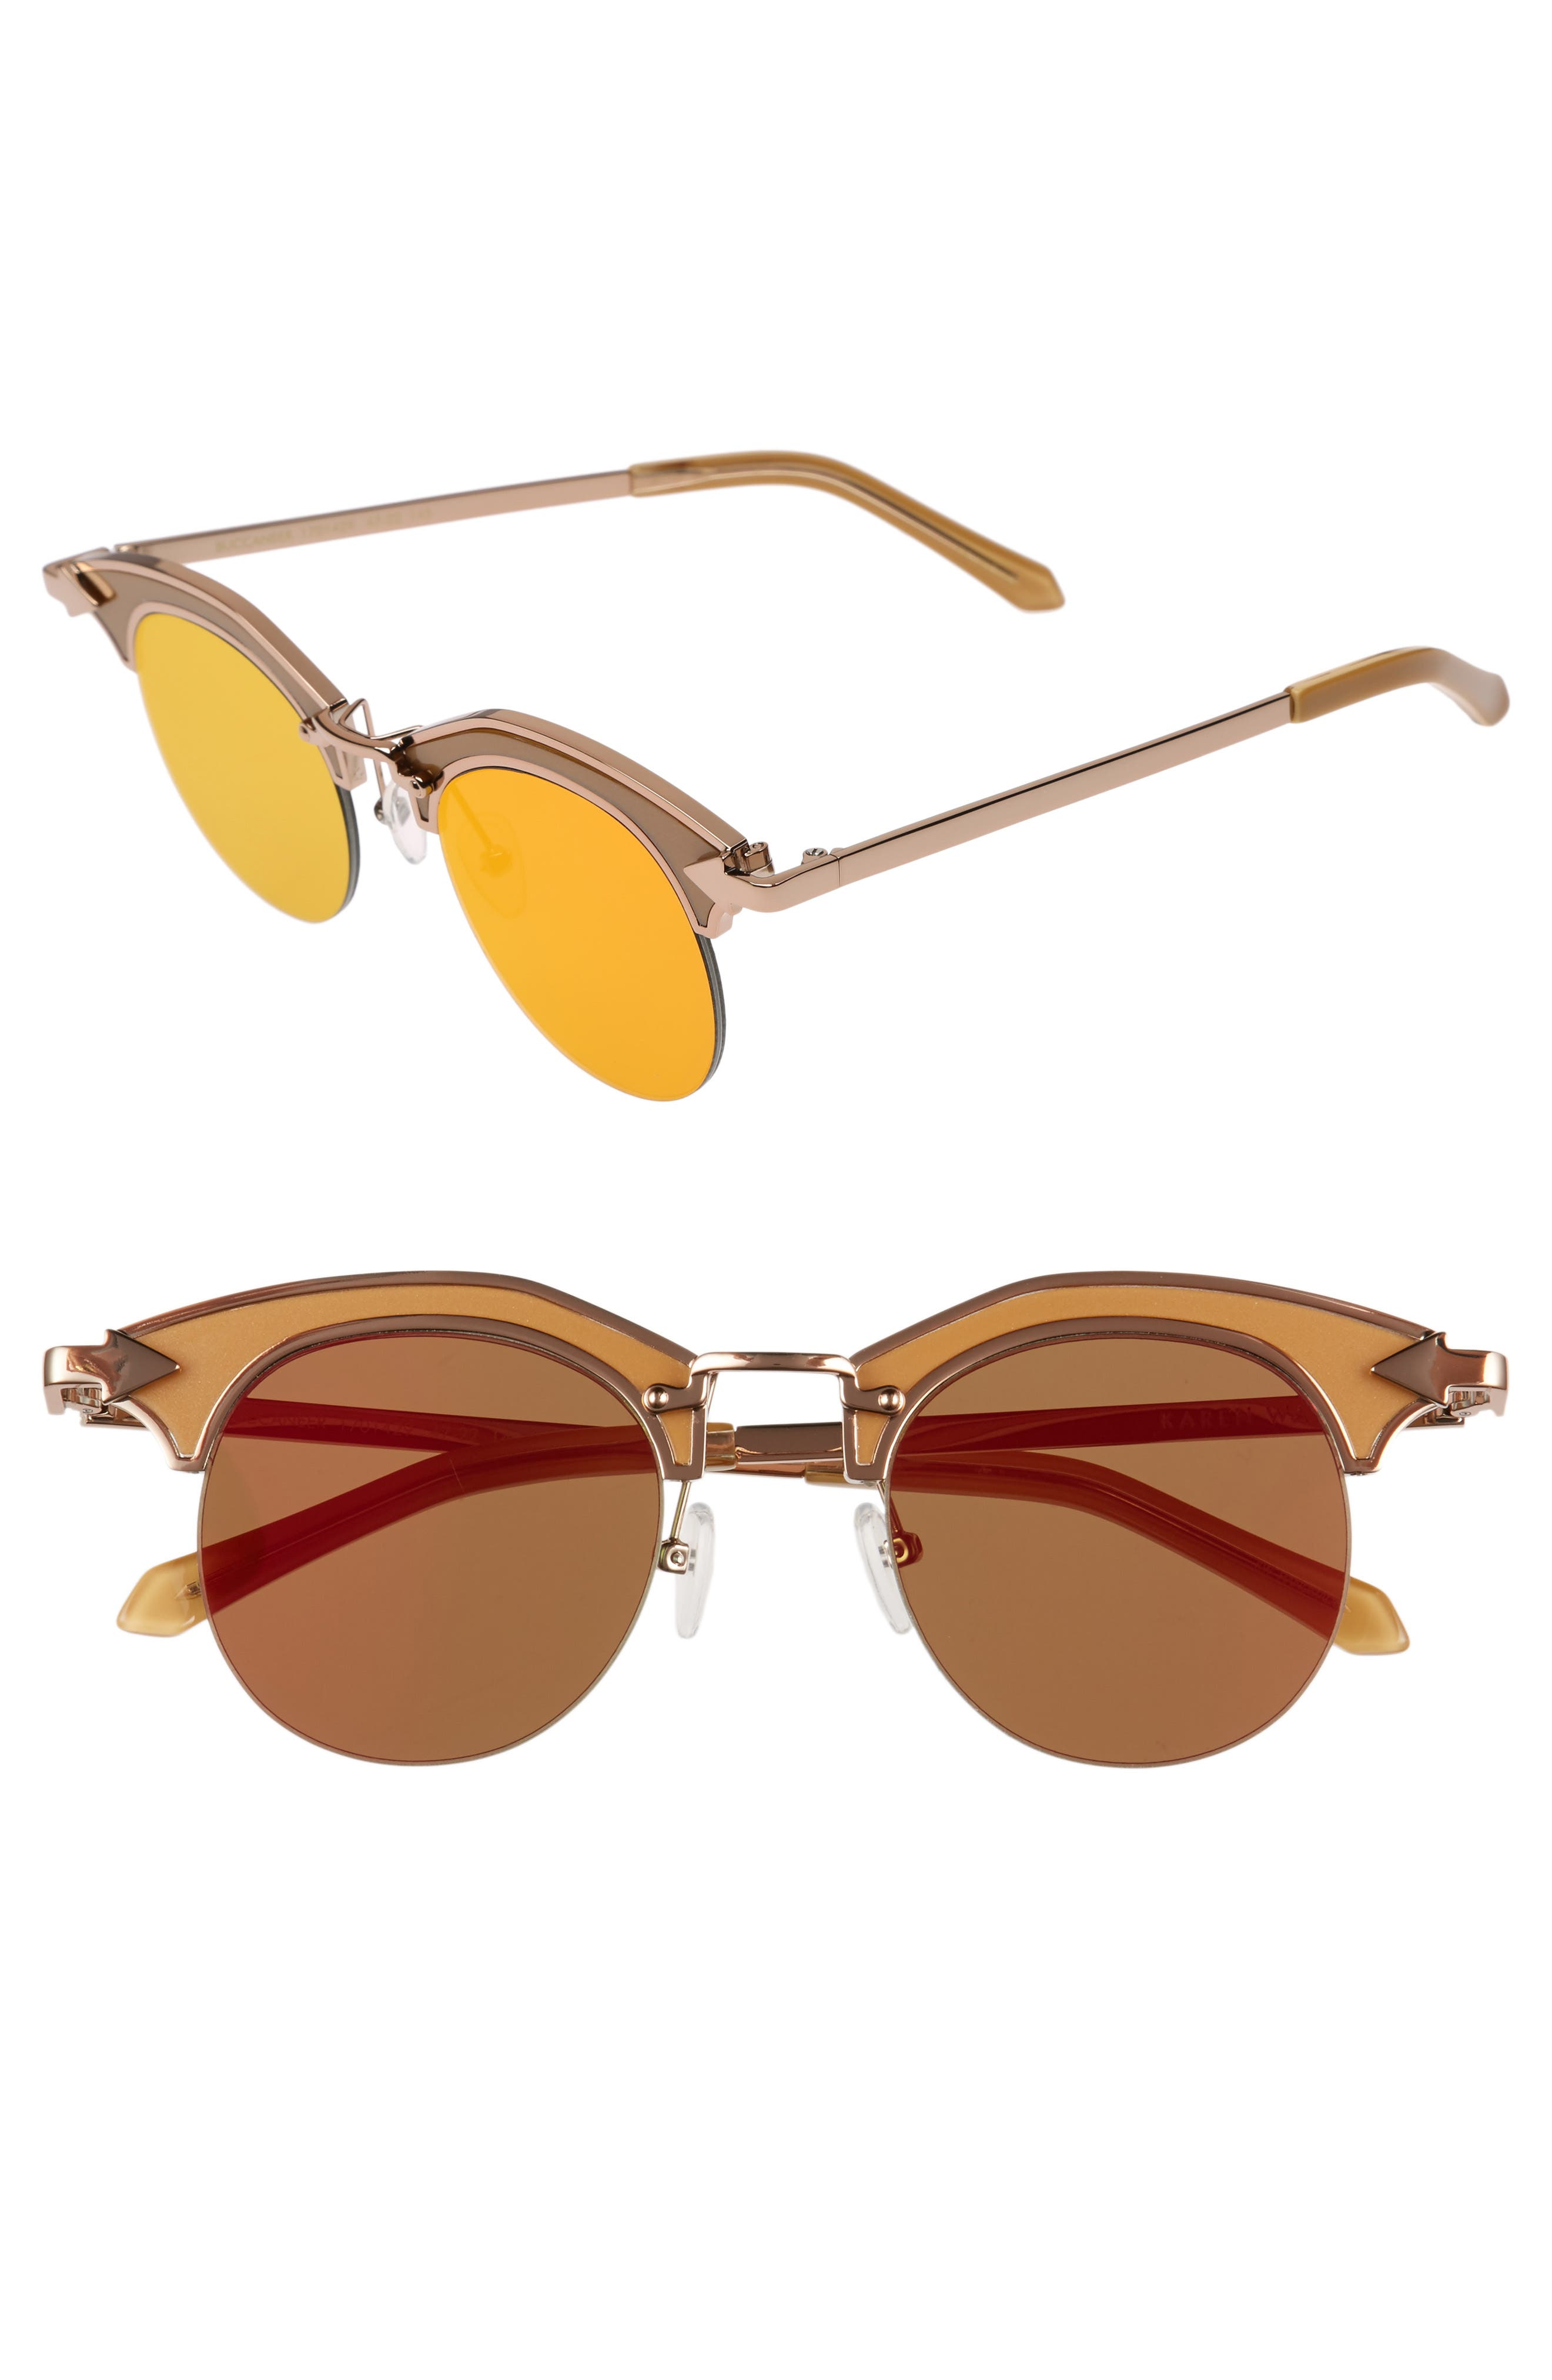 Buccaneer 47mm Round Sunglasses,                         Main,                         color, Tan